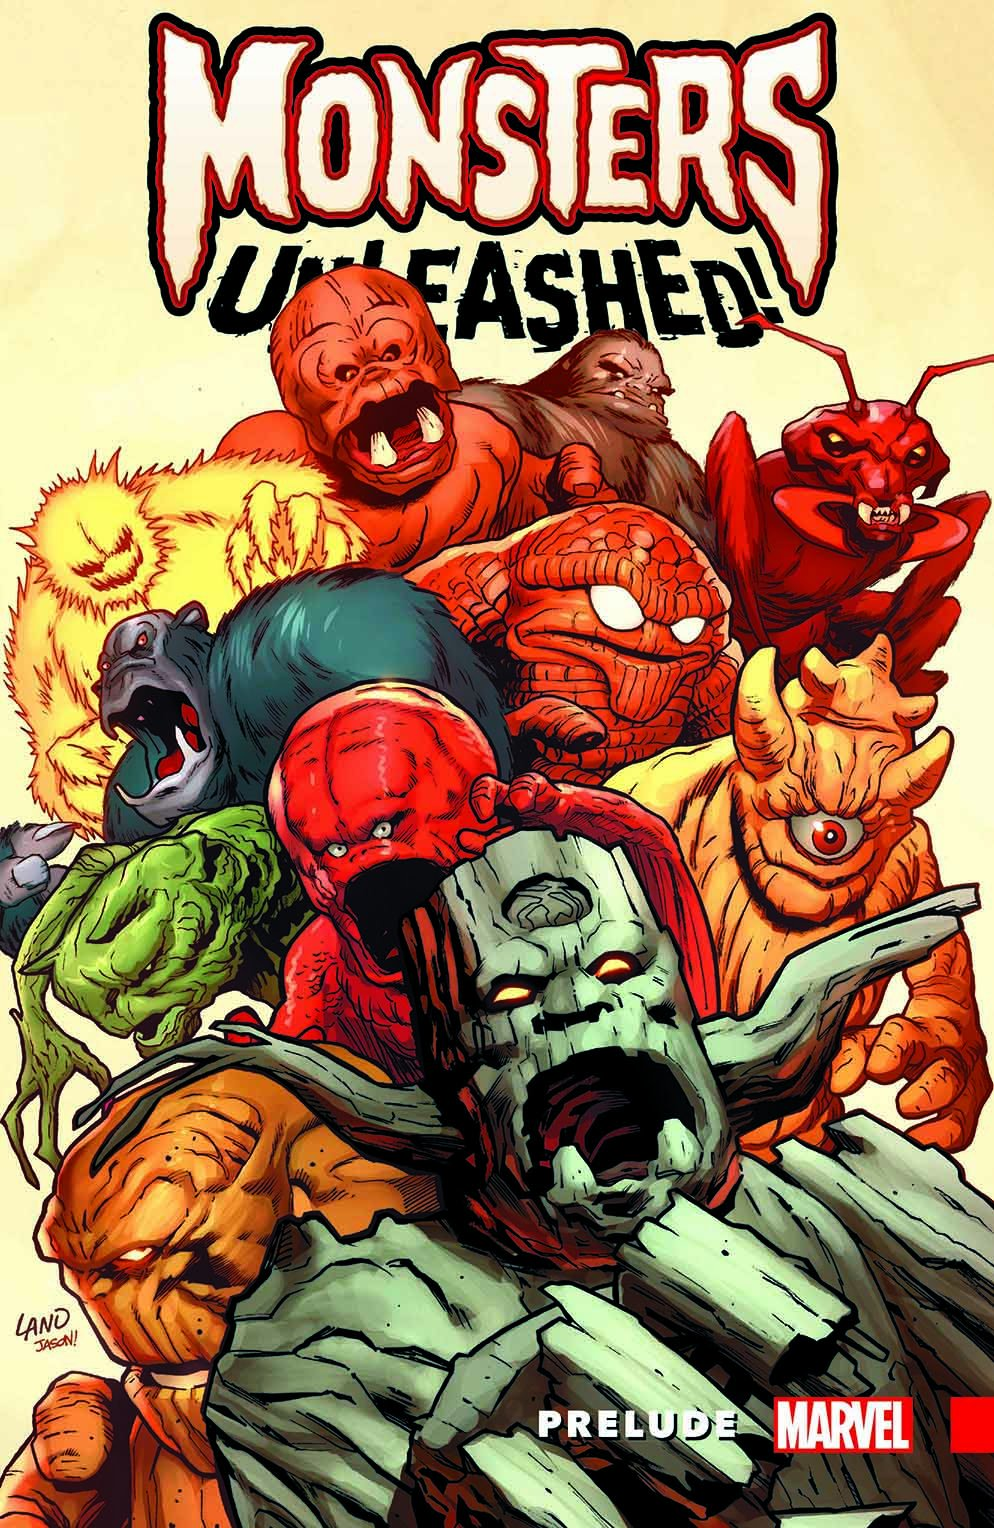 81Nl6%2Bk8KzL MONSTERS UNLEASHED PRELUDE prepares you for unleashing of monsters